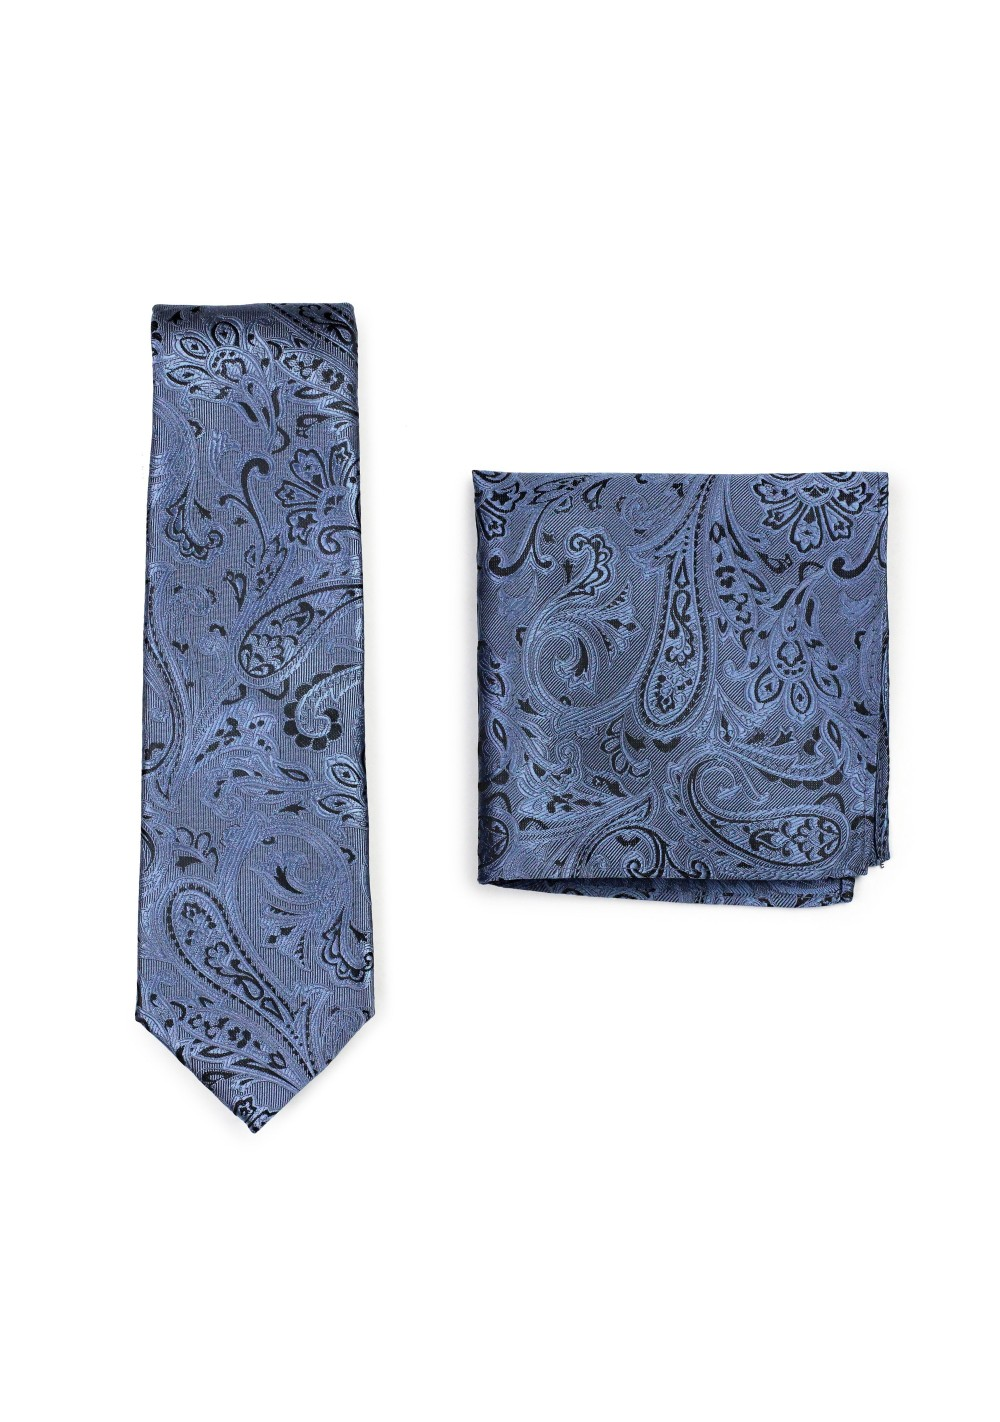 Steel Blue and Black Paisley Tie and Pocket Square Set